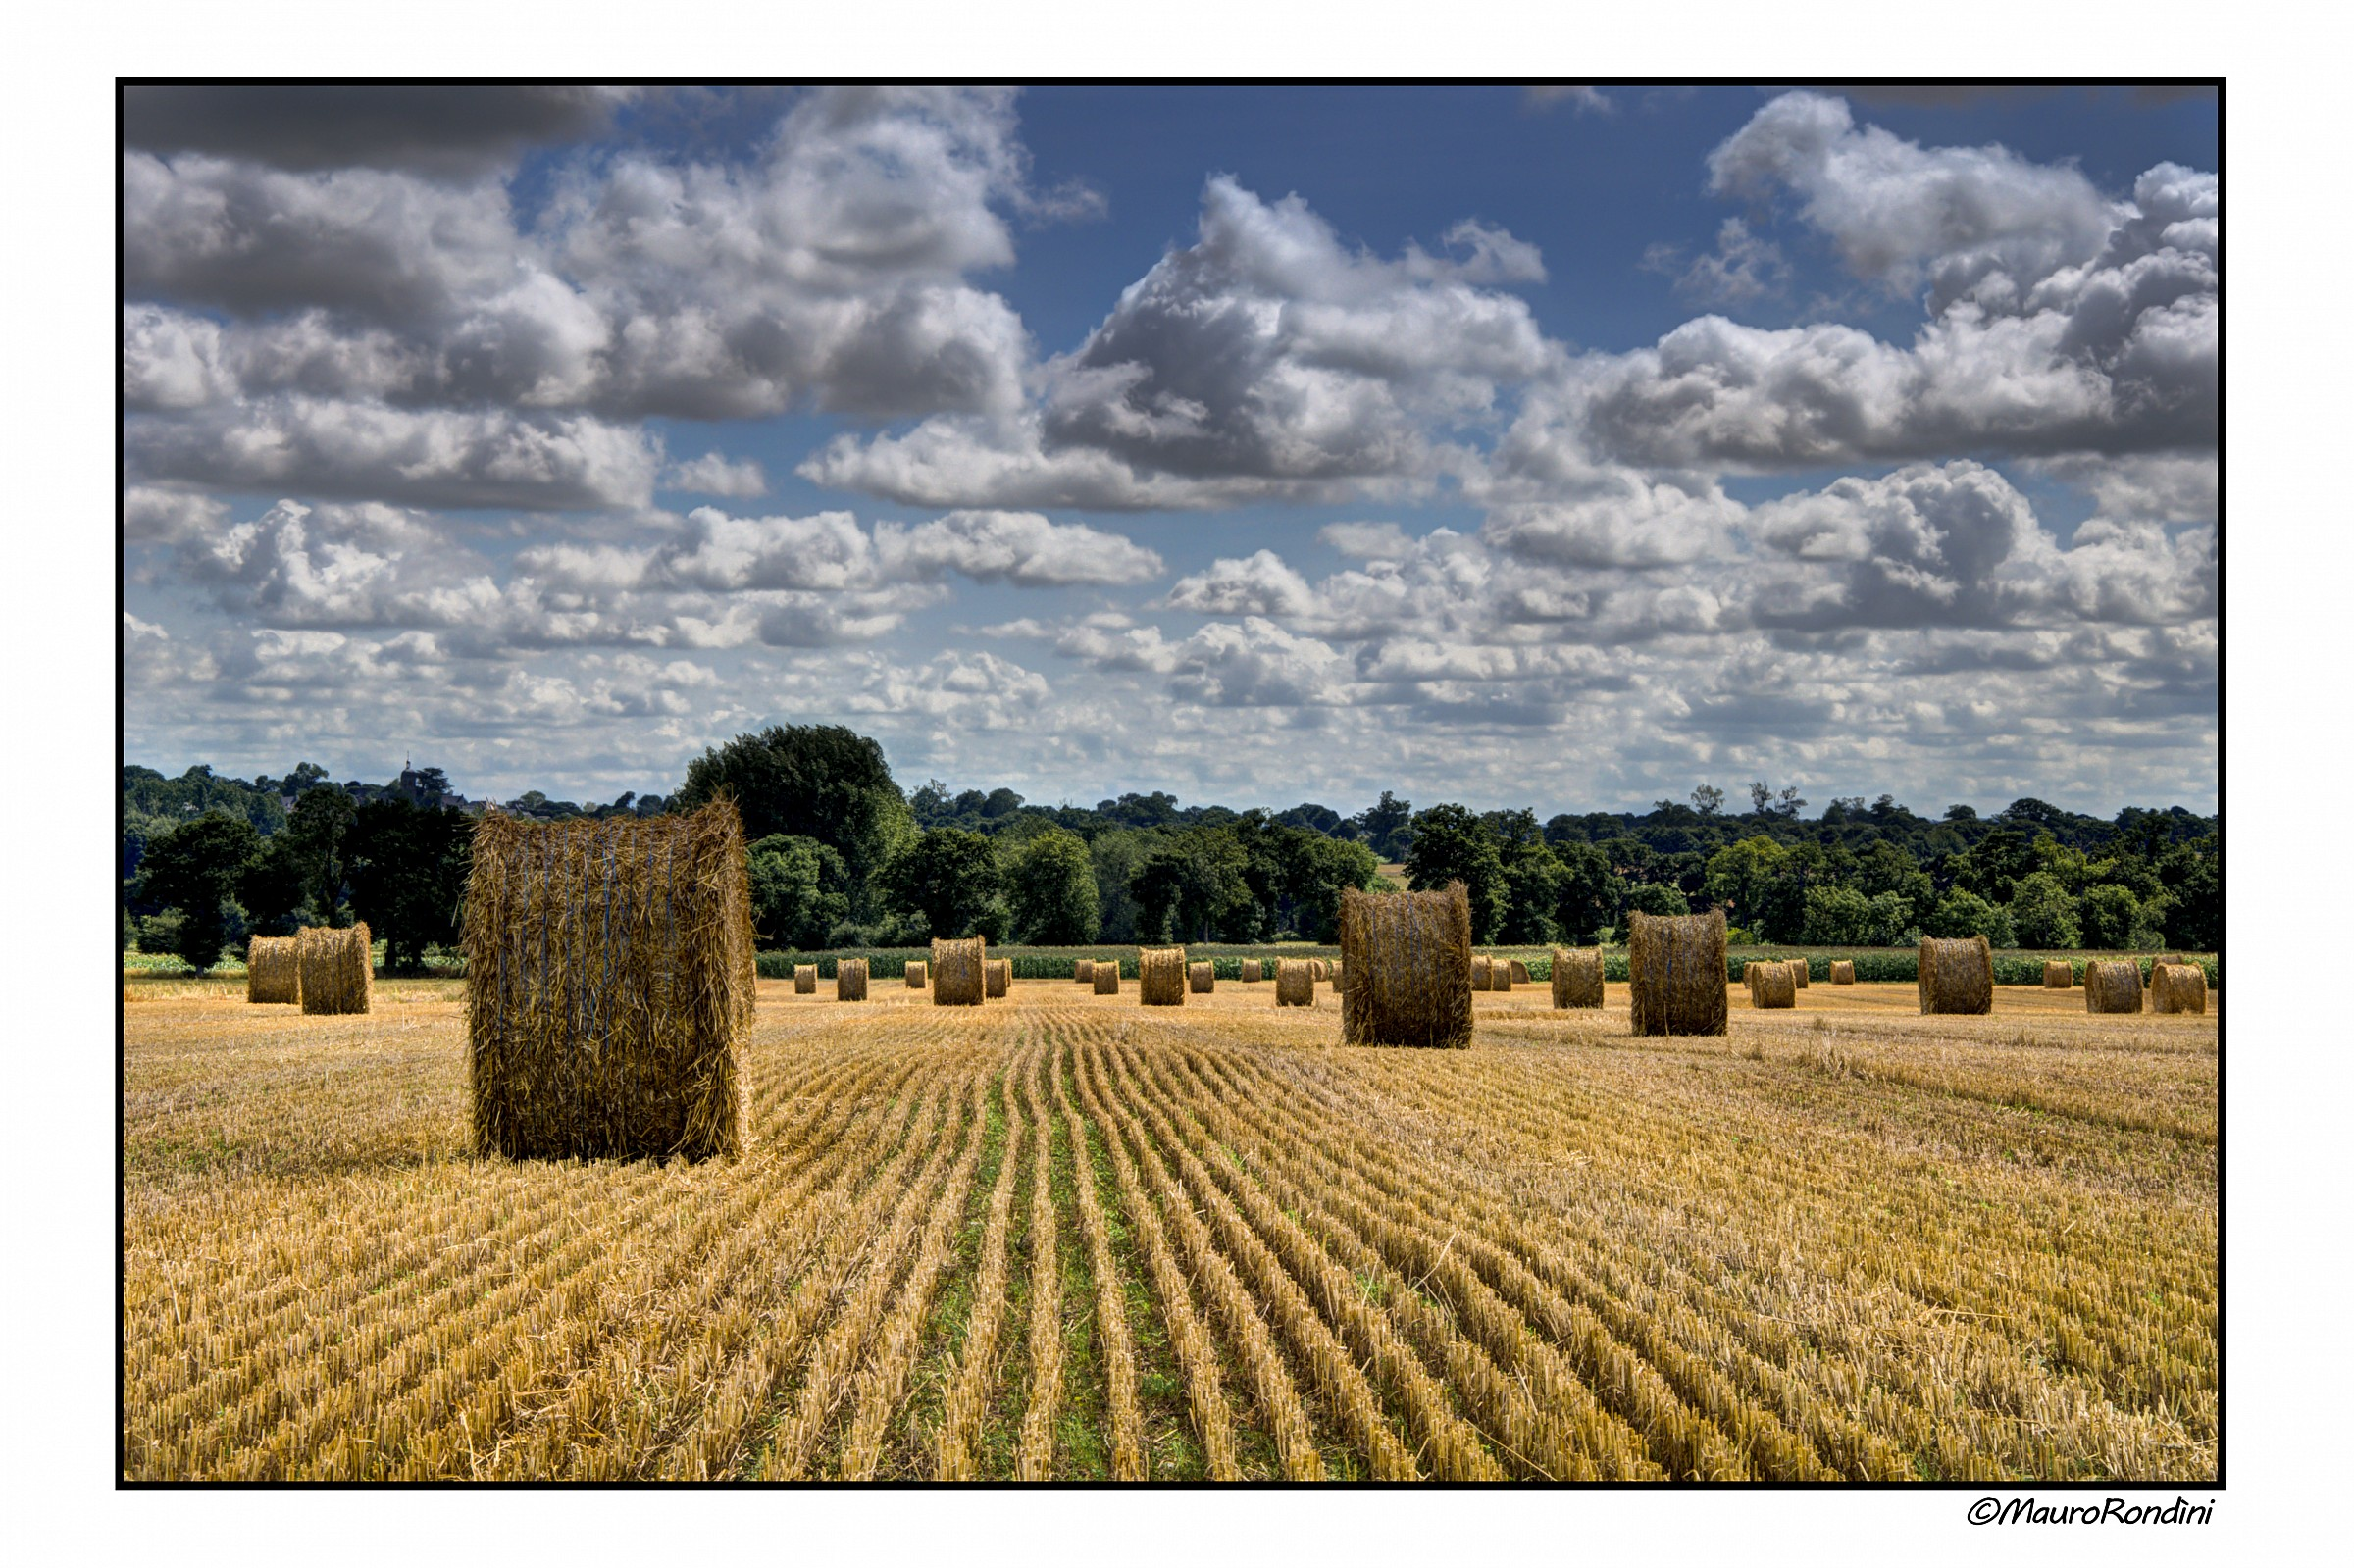 Bales of straw...